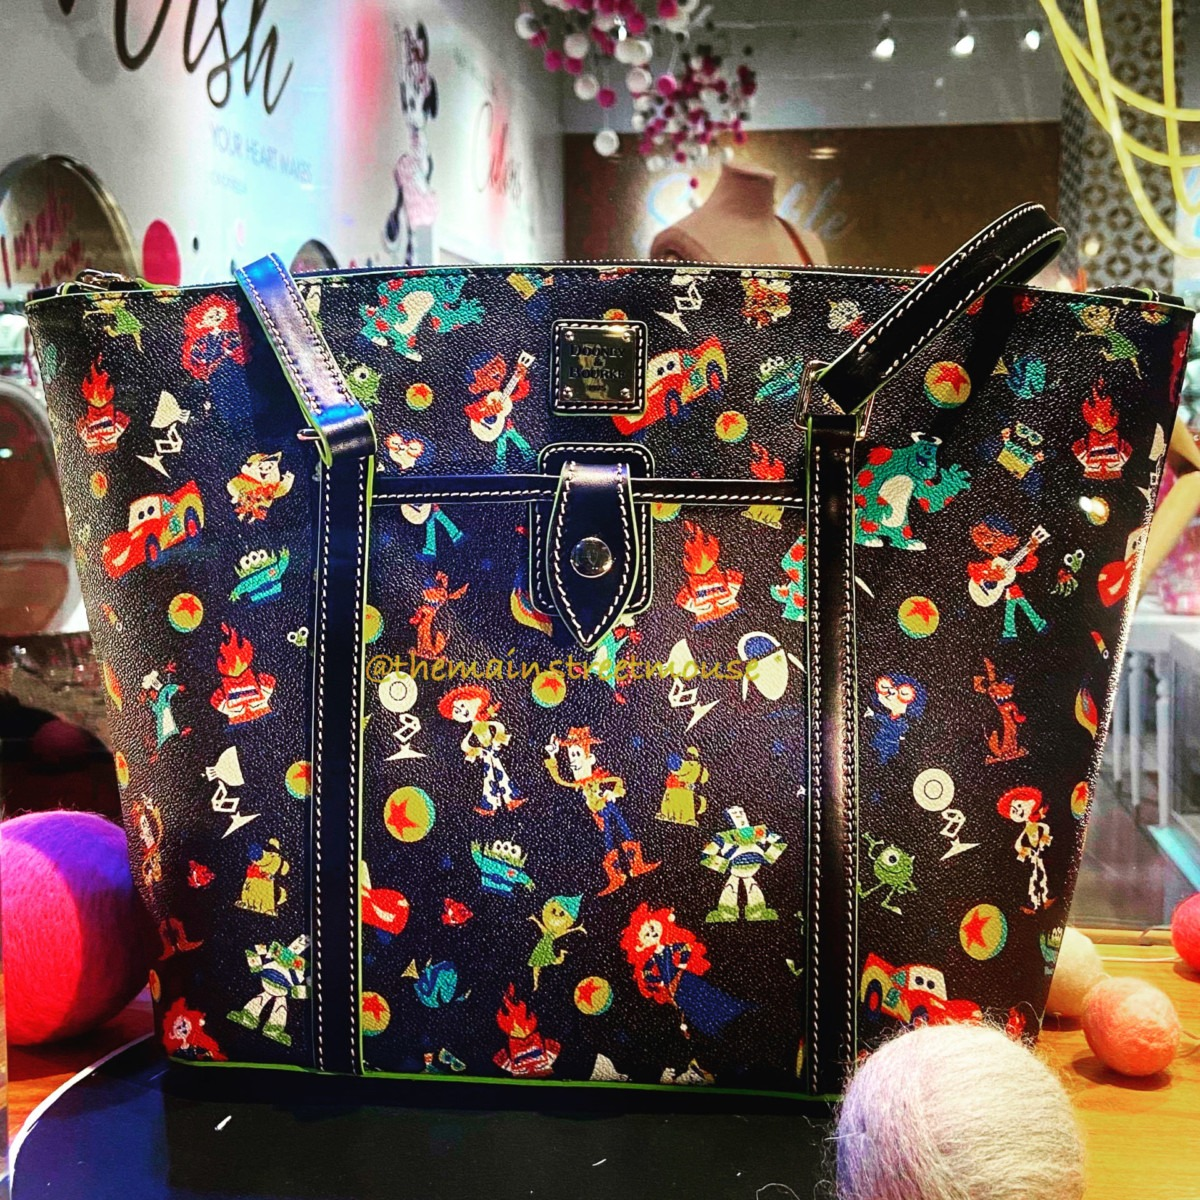 New Pixar Dooney & Bourke Bags Out Tomorrow! 1